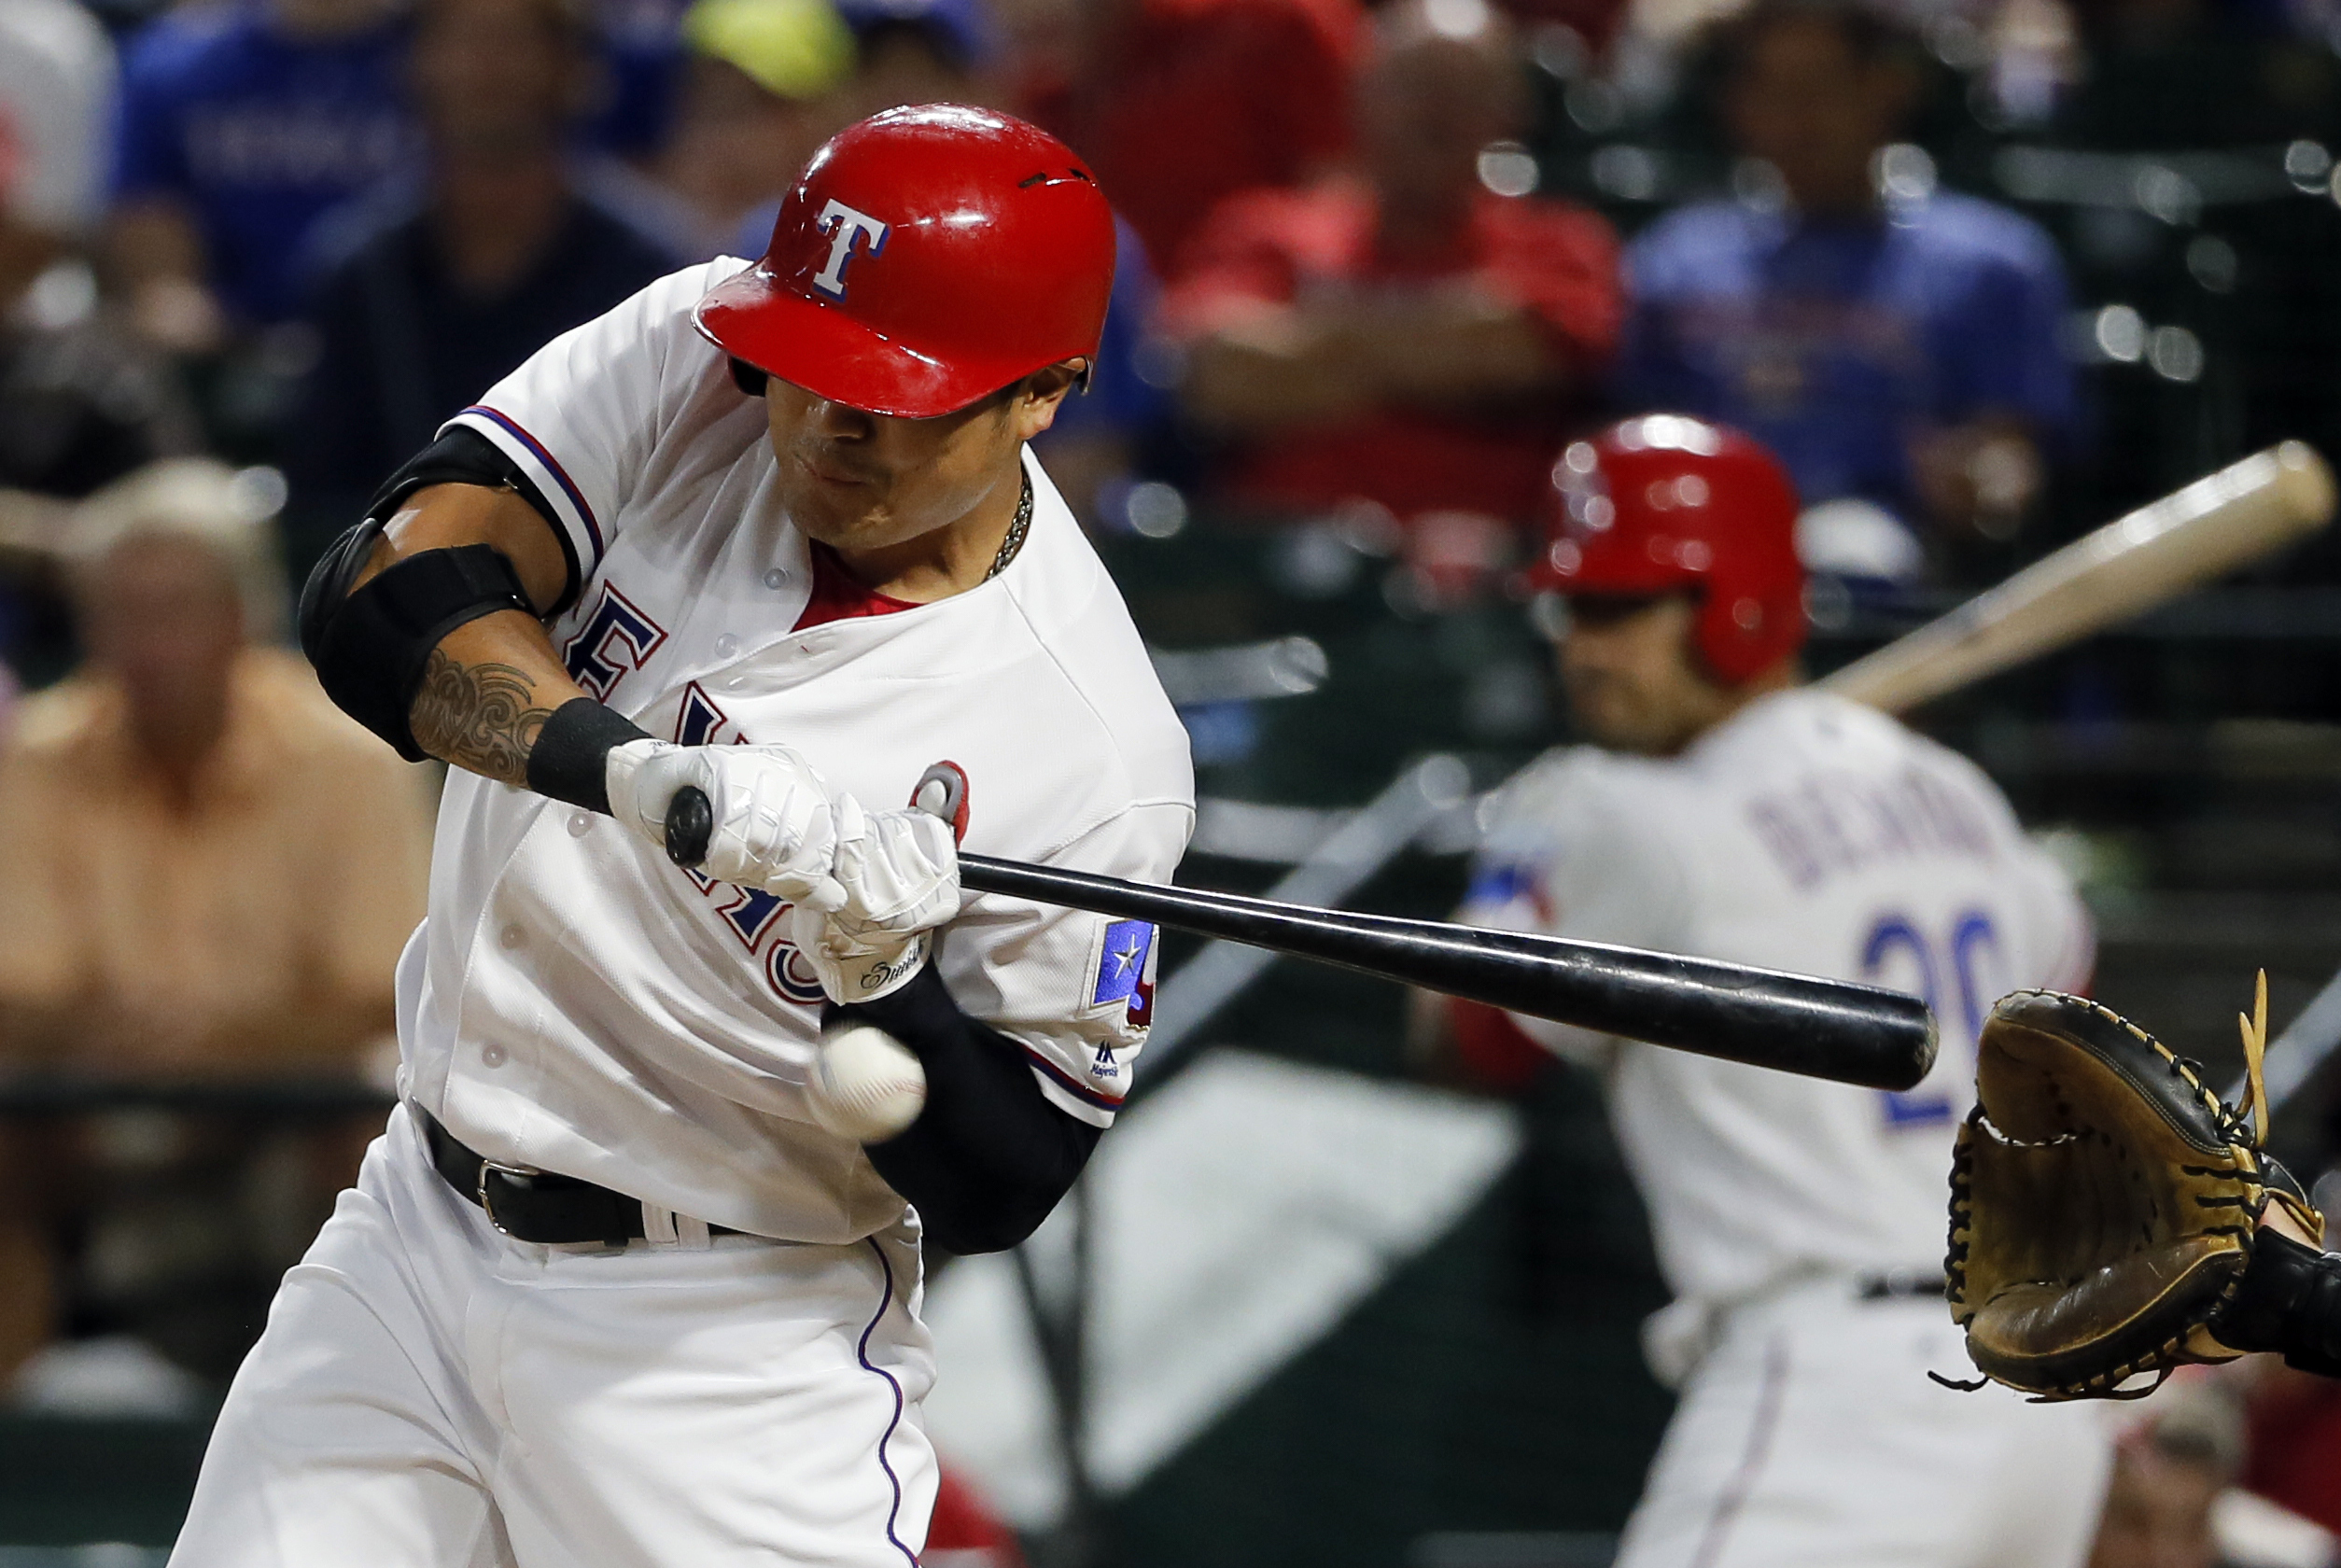 Texas Rangers' Shin-Soo Choo, of South Korea, is hit in the left wrist by a pitch from Oakland Athletics starting pitcher Ross Detwiler in the fifth inning of a baseball game, Monday, Aug. 15, 2016, in Arlington, Texas. (AP Photo/Tony Gutierrez)